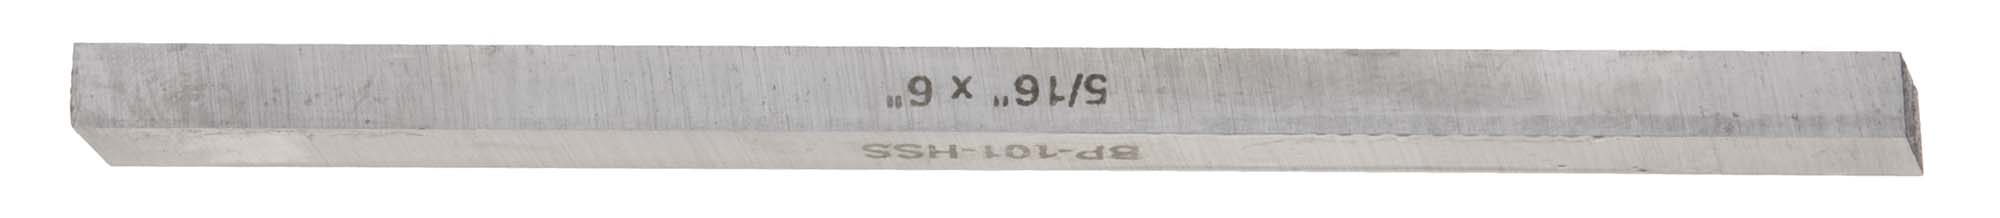 "3/8"" Square X 6"" Long High Speed Steel M2 Tool Bit"